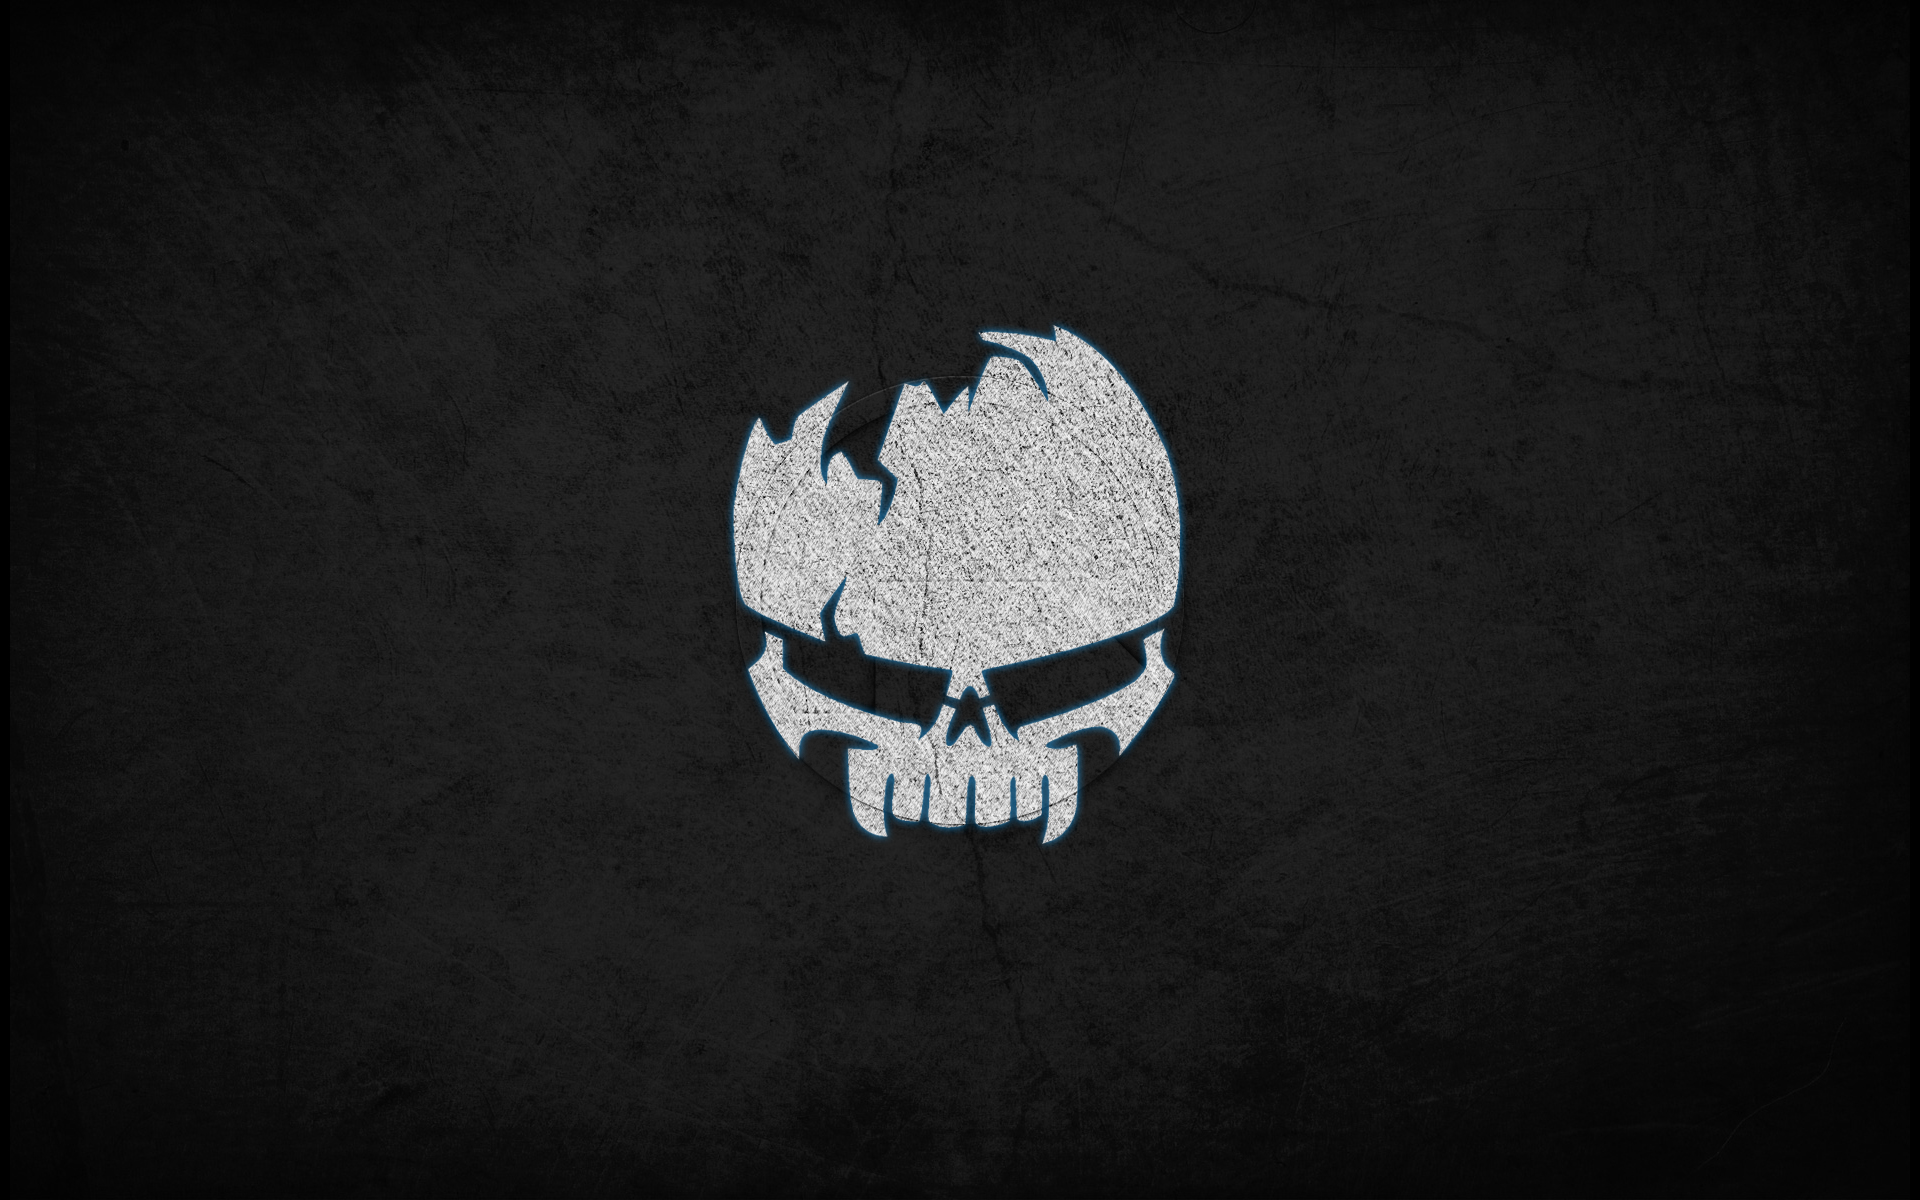 Angry Skull Wallpaper Hd 4238812 1920x1200 All For Desktop